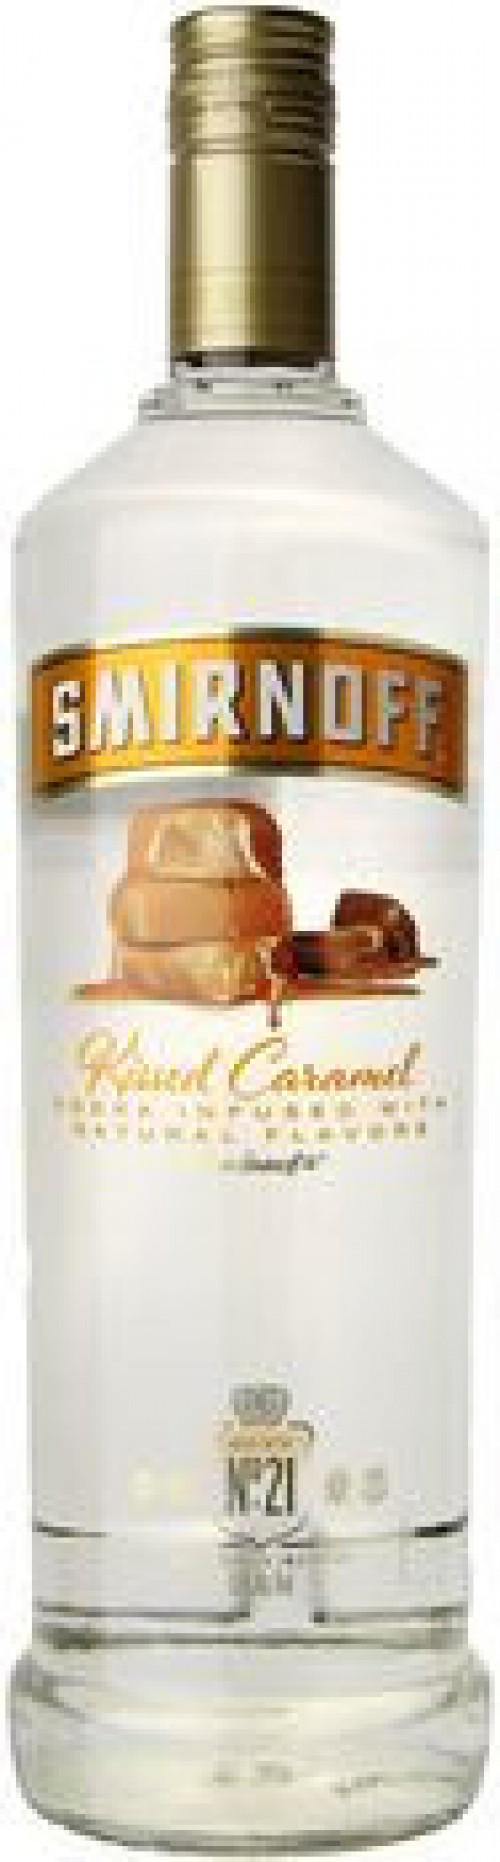 Smirnoff Kissed Caramel Flavored Vodka 1L